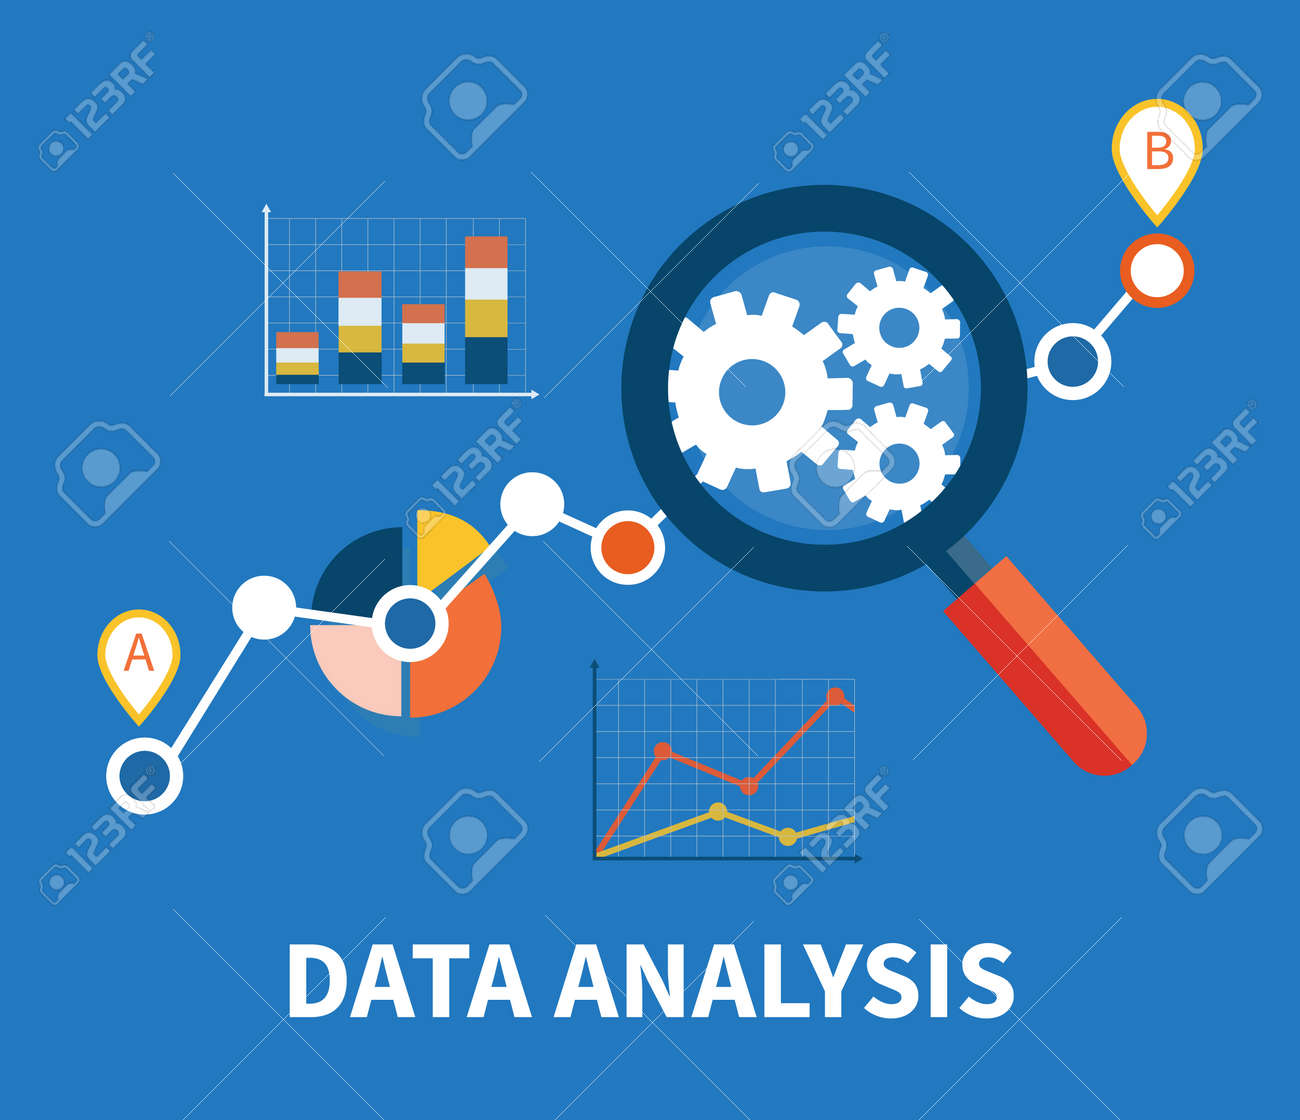 Banner with focused magnifying glass on gear and multicolored pie chart with name Data analysis on blue background. For web construction, mobile applications, banners, corporate brochures, layouts - 42814502